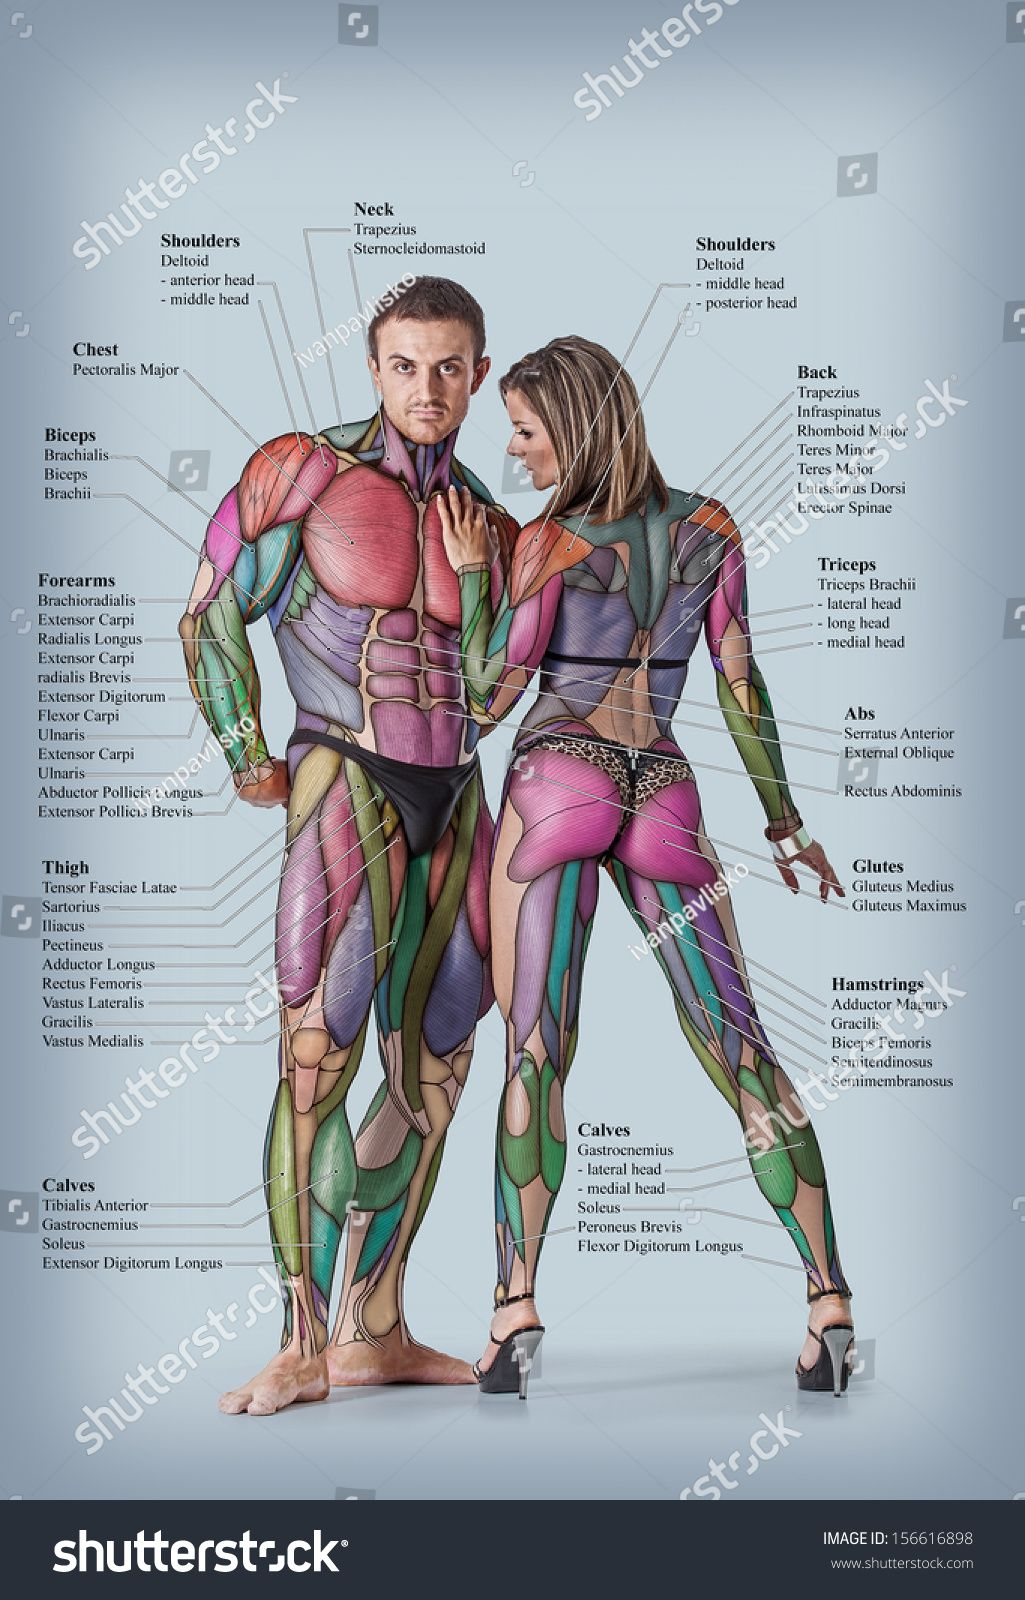 https://image.shutterstock.com/z/stock-photo-anatomy-of-male-and ...